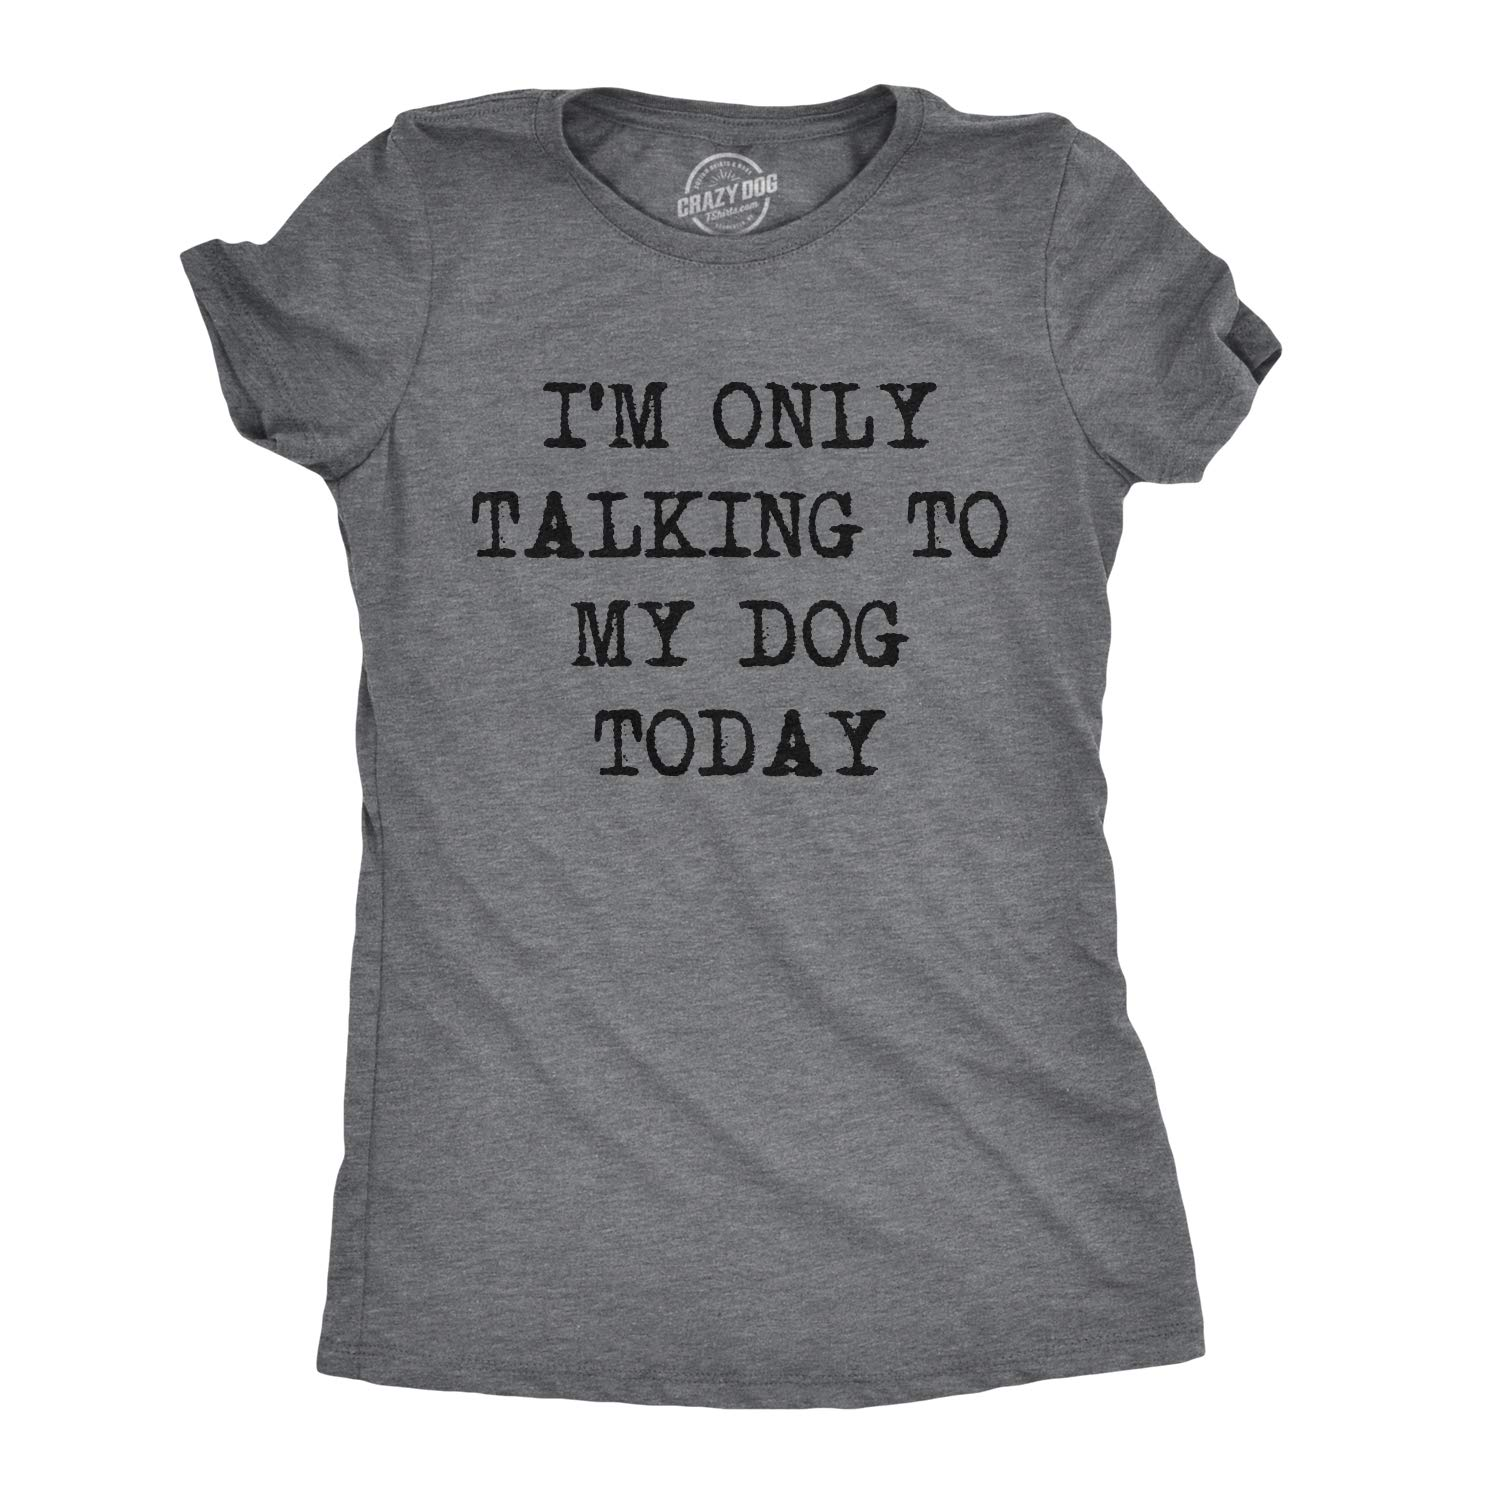 9fa25212953 Amazon.com  Womens Only Talking to My Dog Today Funny Shirts Dog Lovers  Novelty Cool T Shirt  Clothing